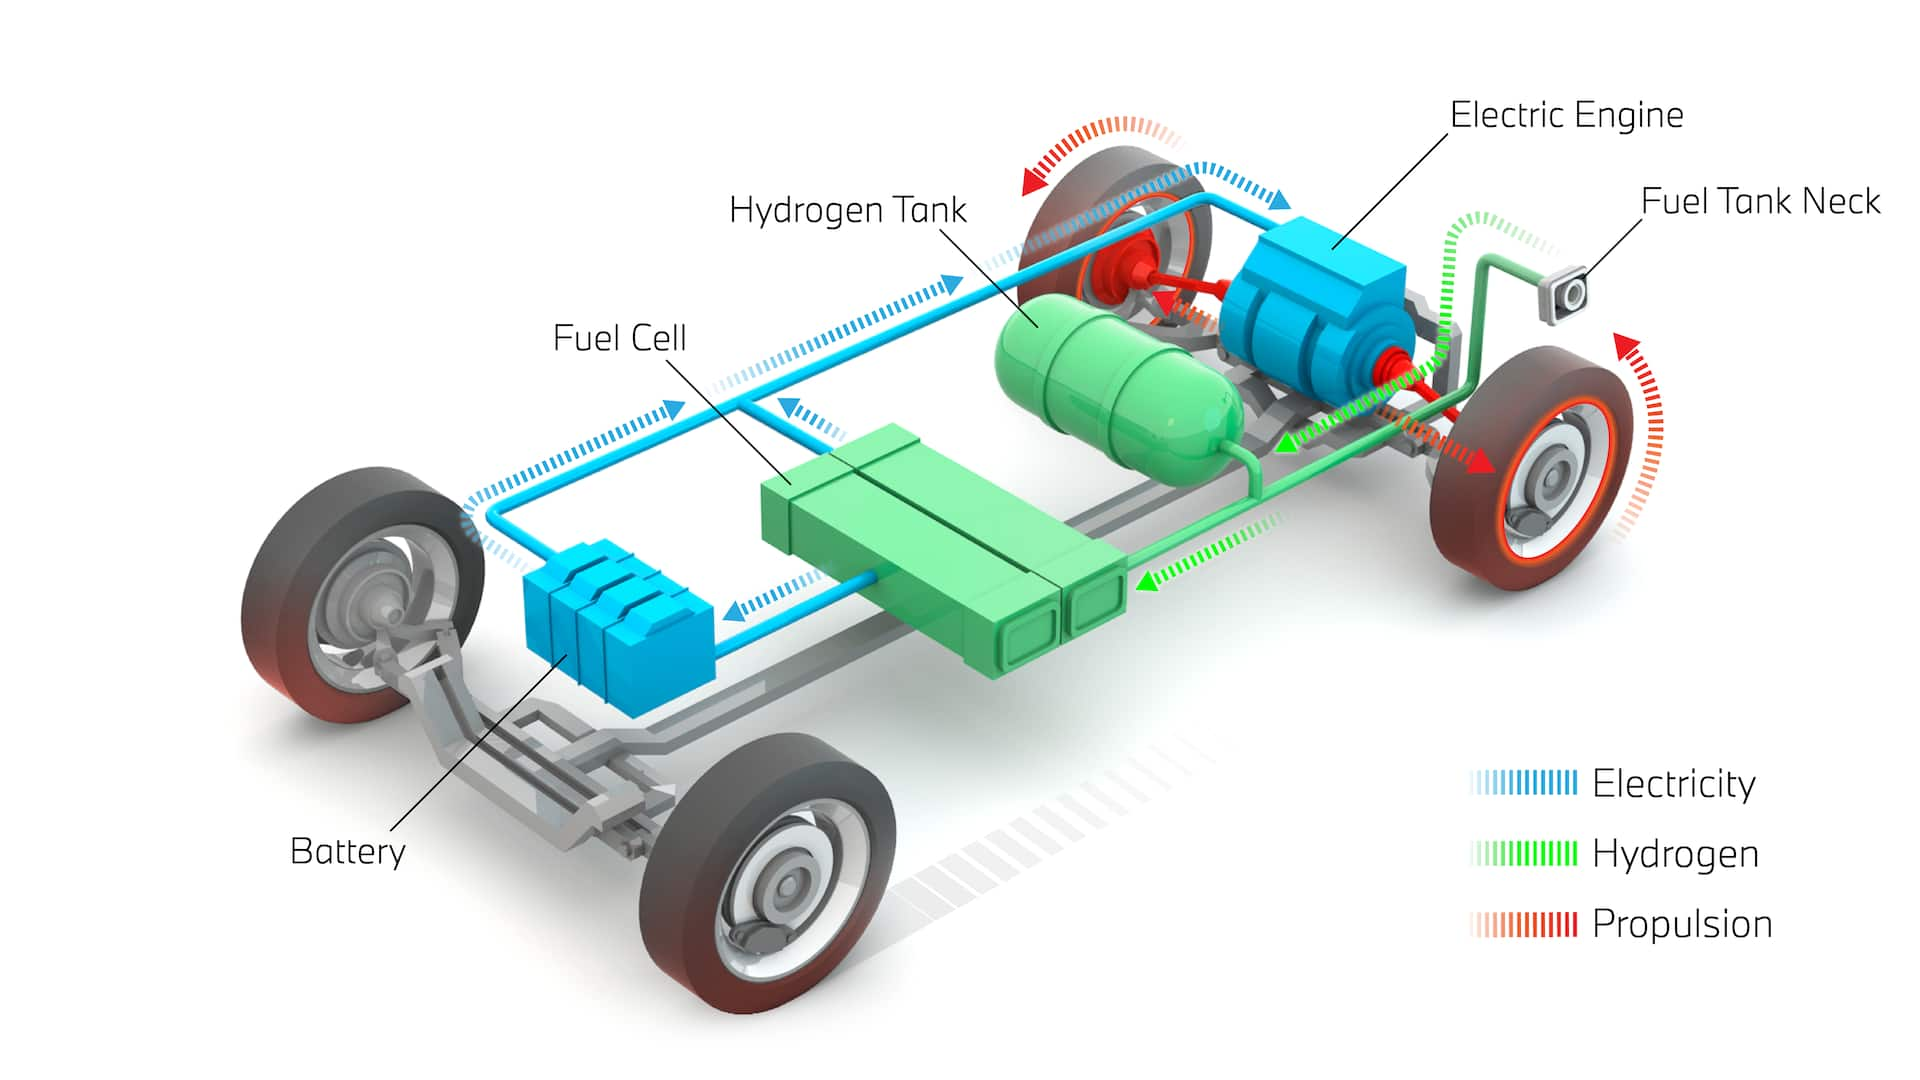 Overview of an FCEV Hydrogen fuel cell technology